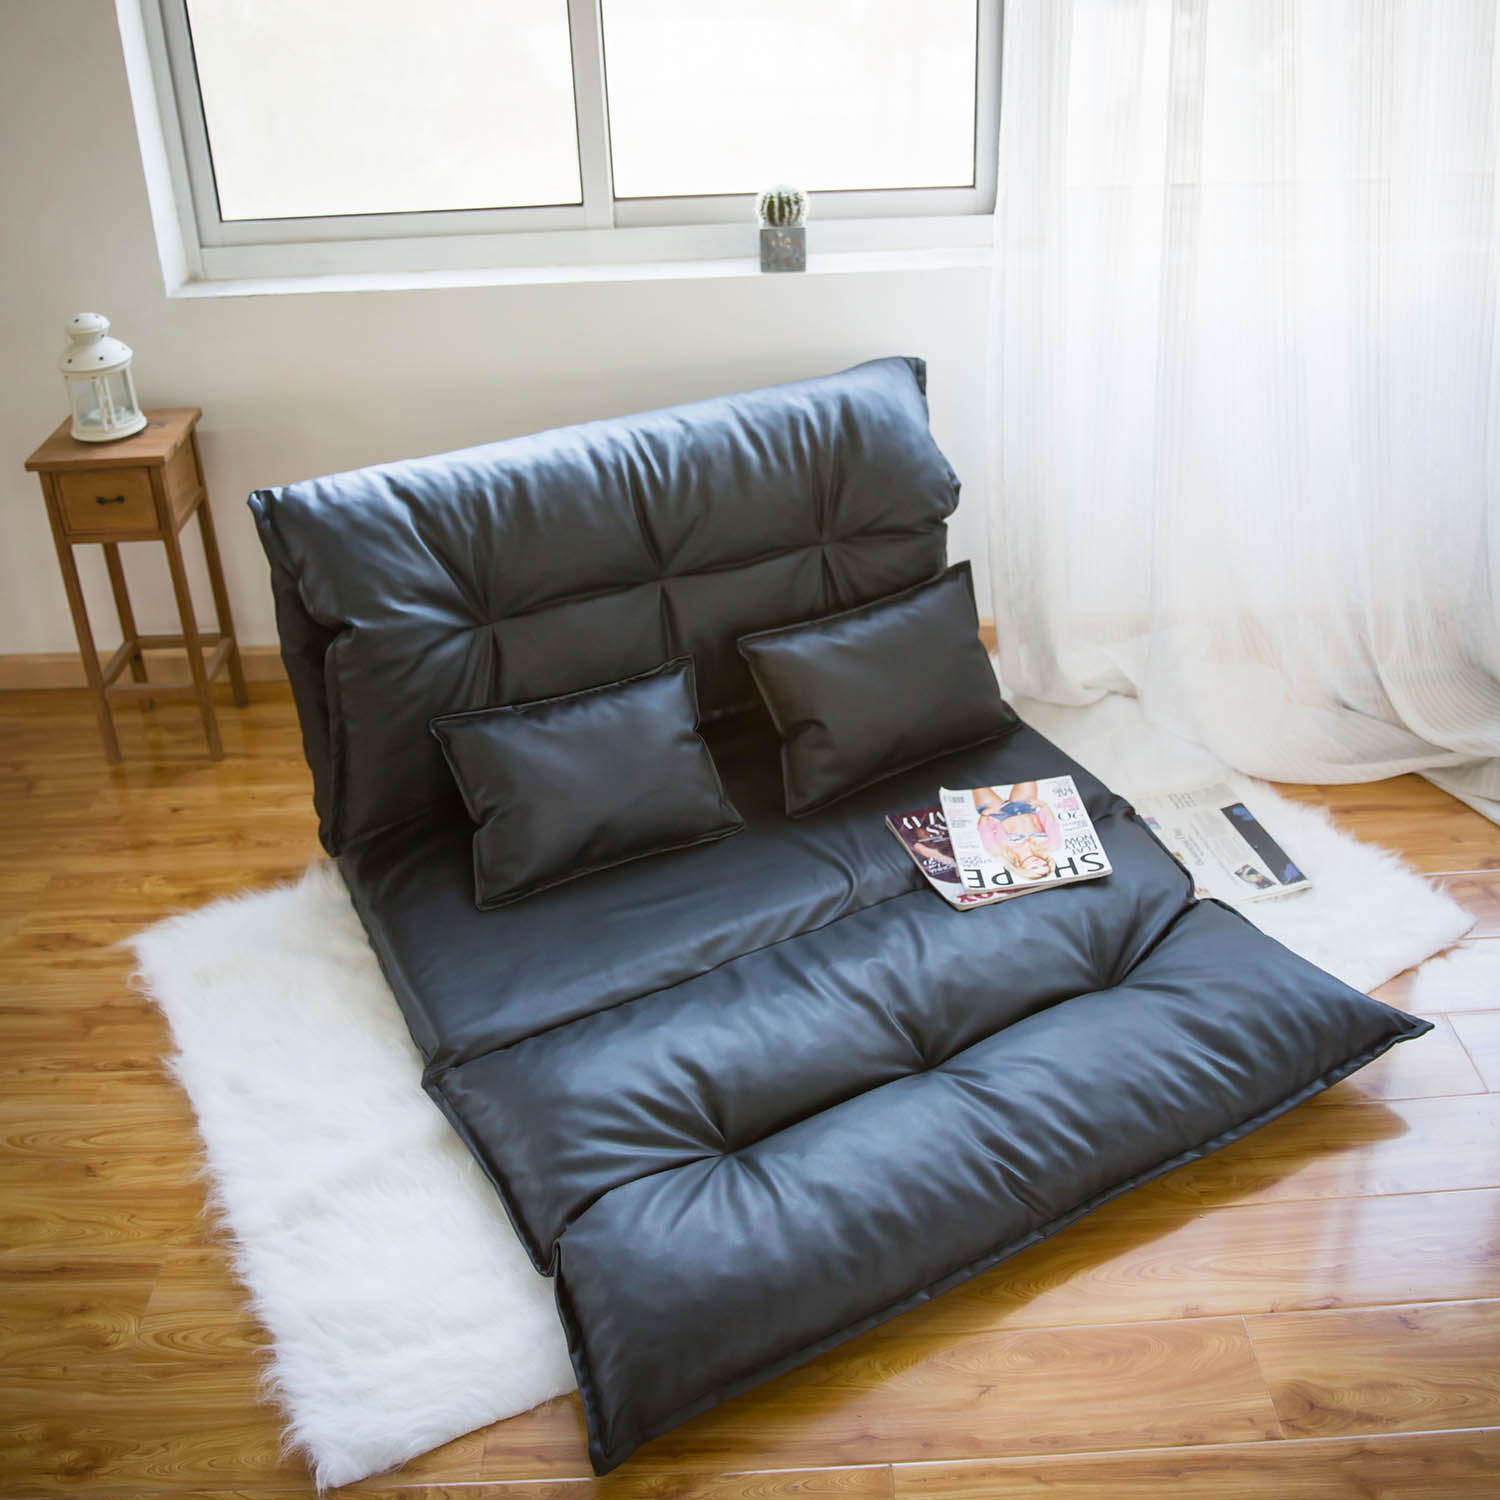 Super Kinbor Floor Sofa Pu Leather Foldable Modern Leisure Sofa Bed Video Gaming Sofa With Two Pillows Black Uwap Interior Chair Design Uwaporg